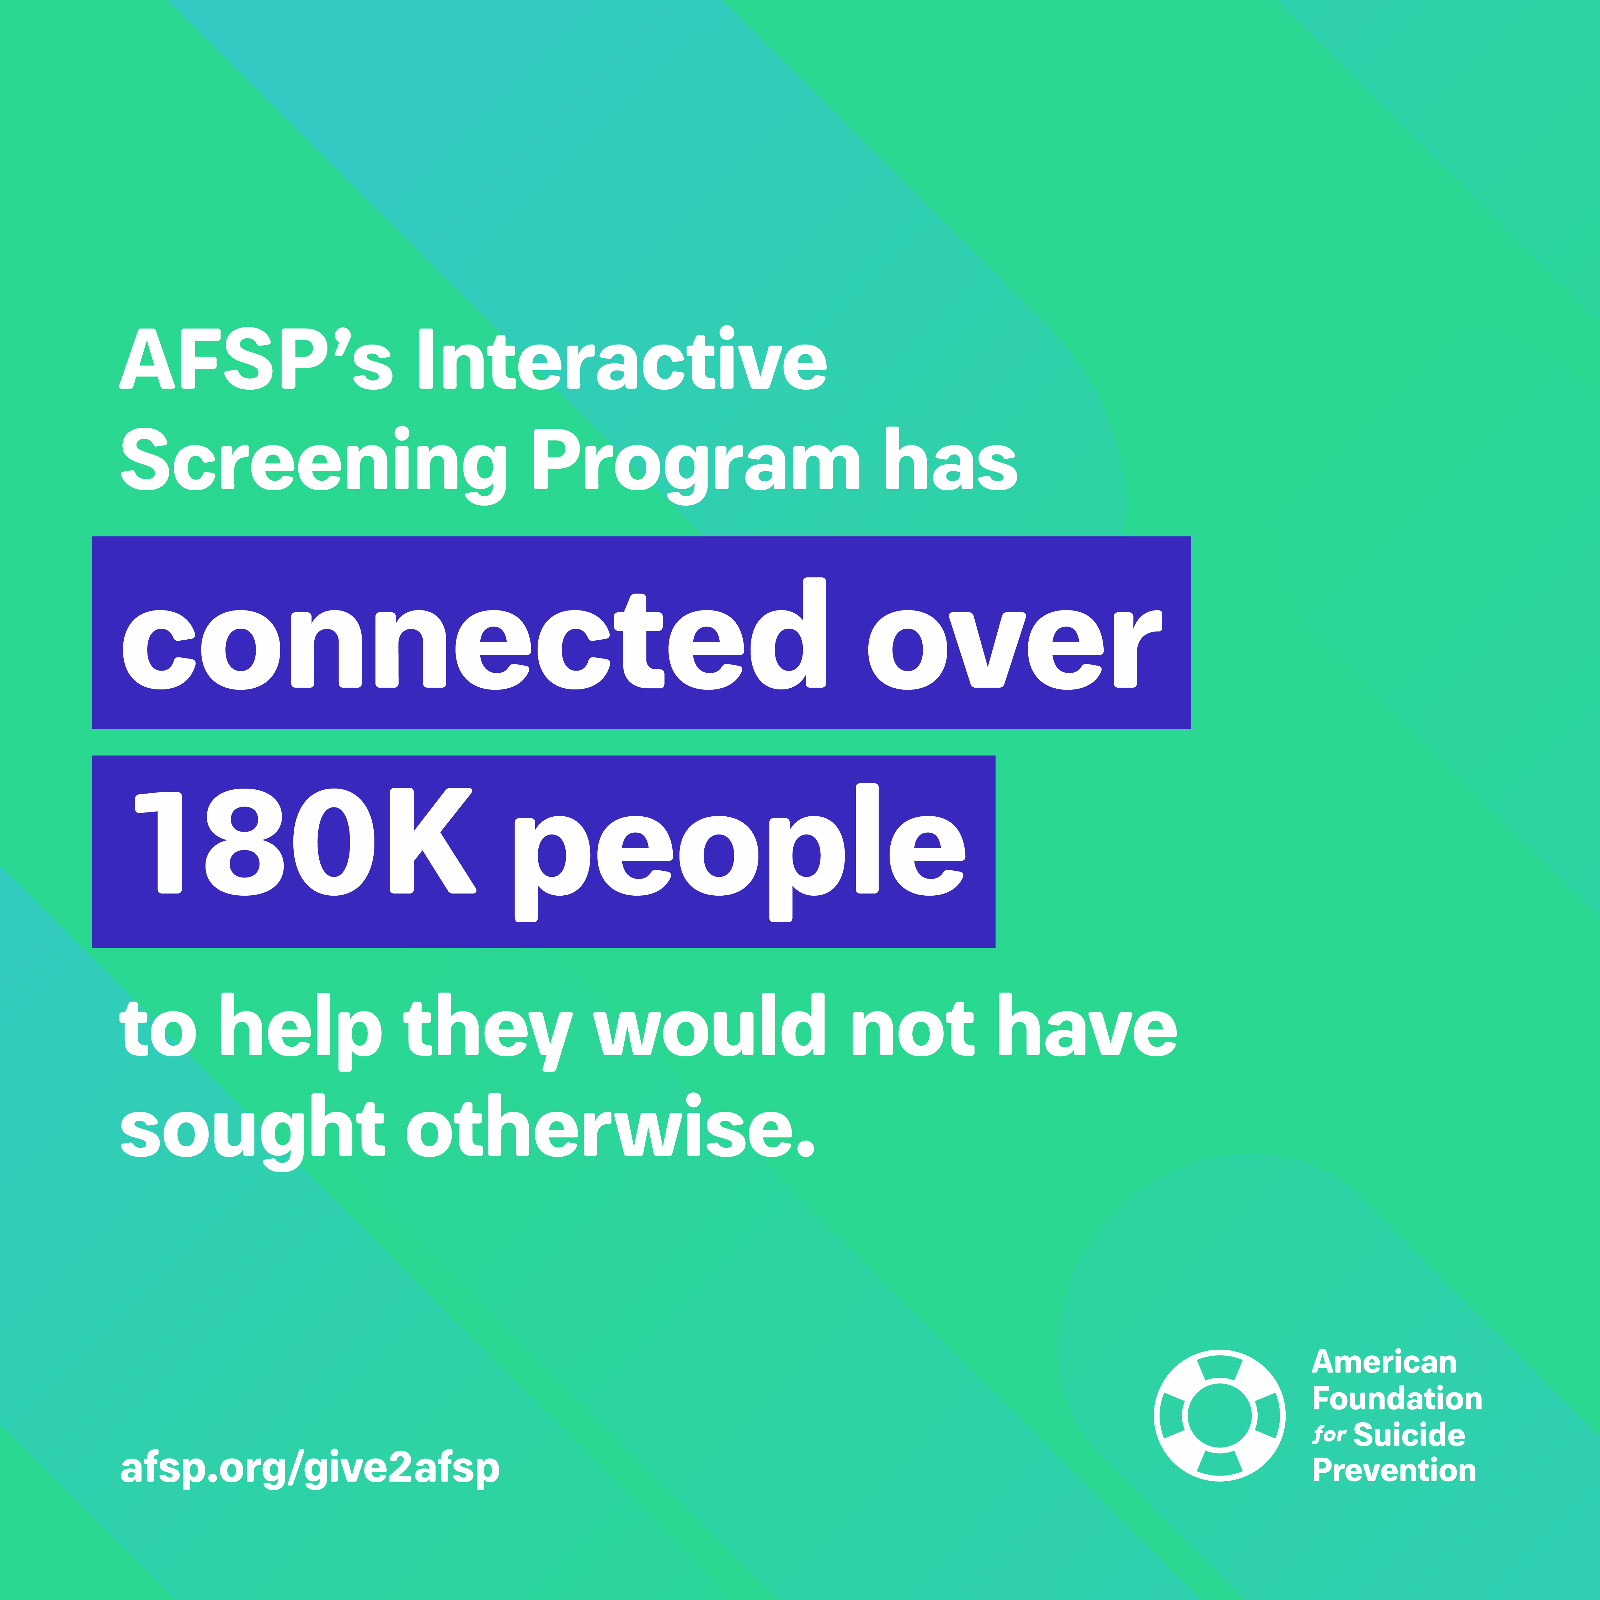 AFSP's Interactive Screen Program has connected over 180k people to help they would not have sought otherwise.